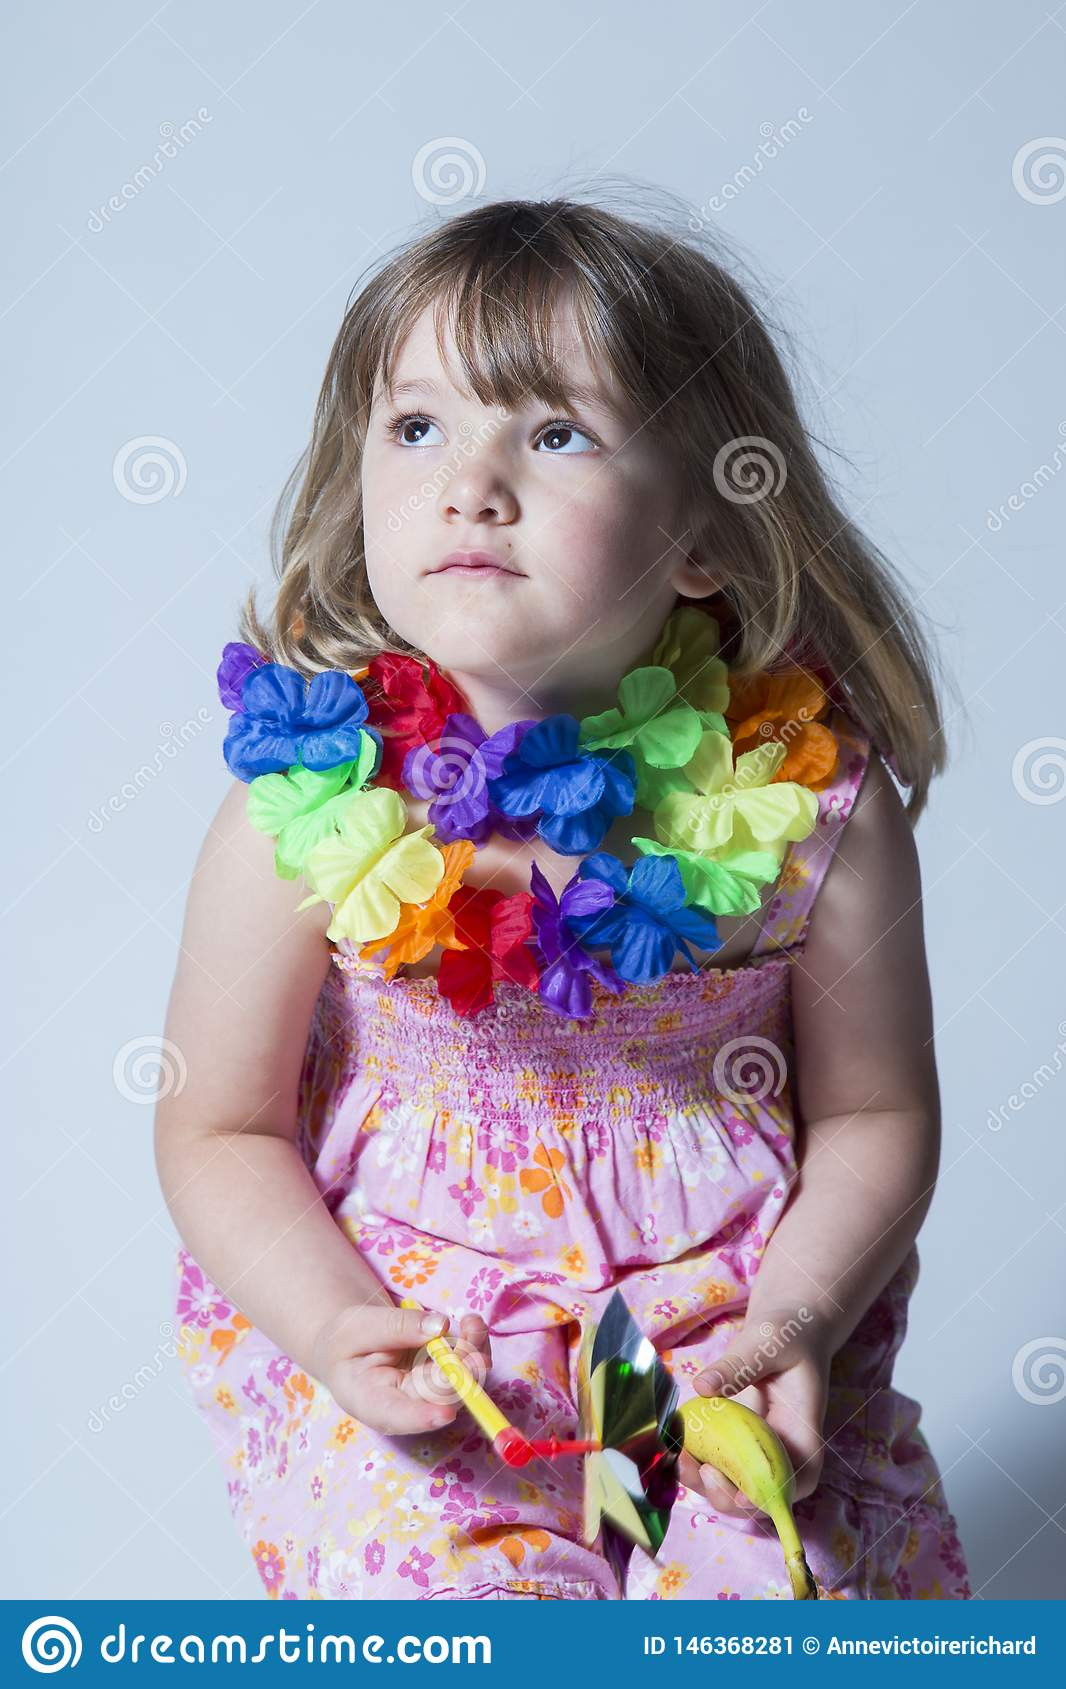 Pretty little girl dressed in pink floral dress and silk flower garland sitting on stool